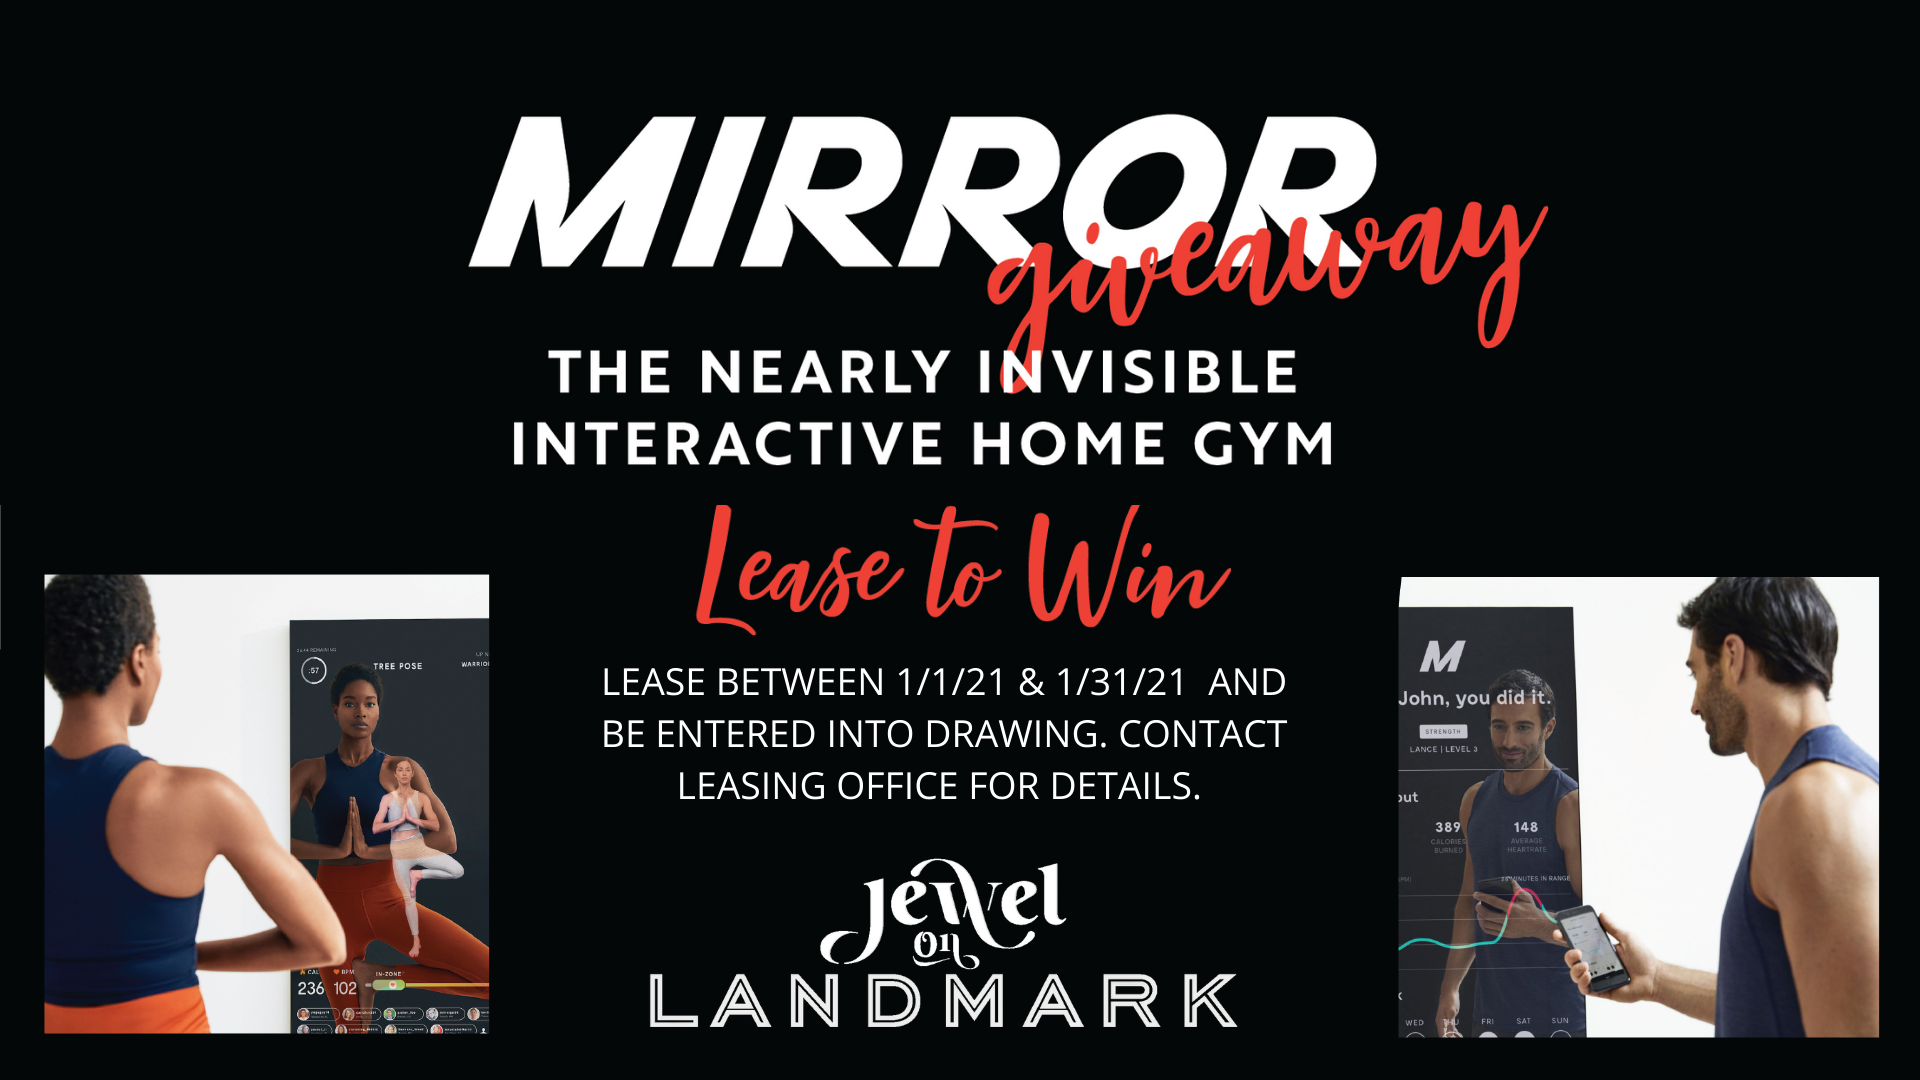 Mirror Giveaway. The nearly invisible interactive home gym. Lease to win. Lease between 12 01 20 and 12 31 20 and be entered into drawing. Contact leasing office for details. Jewel On Landmark.